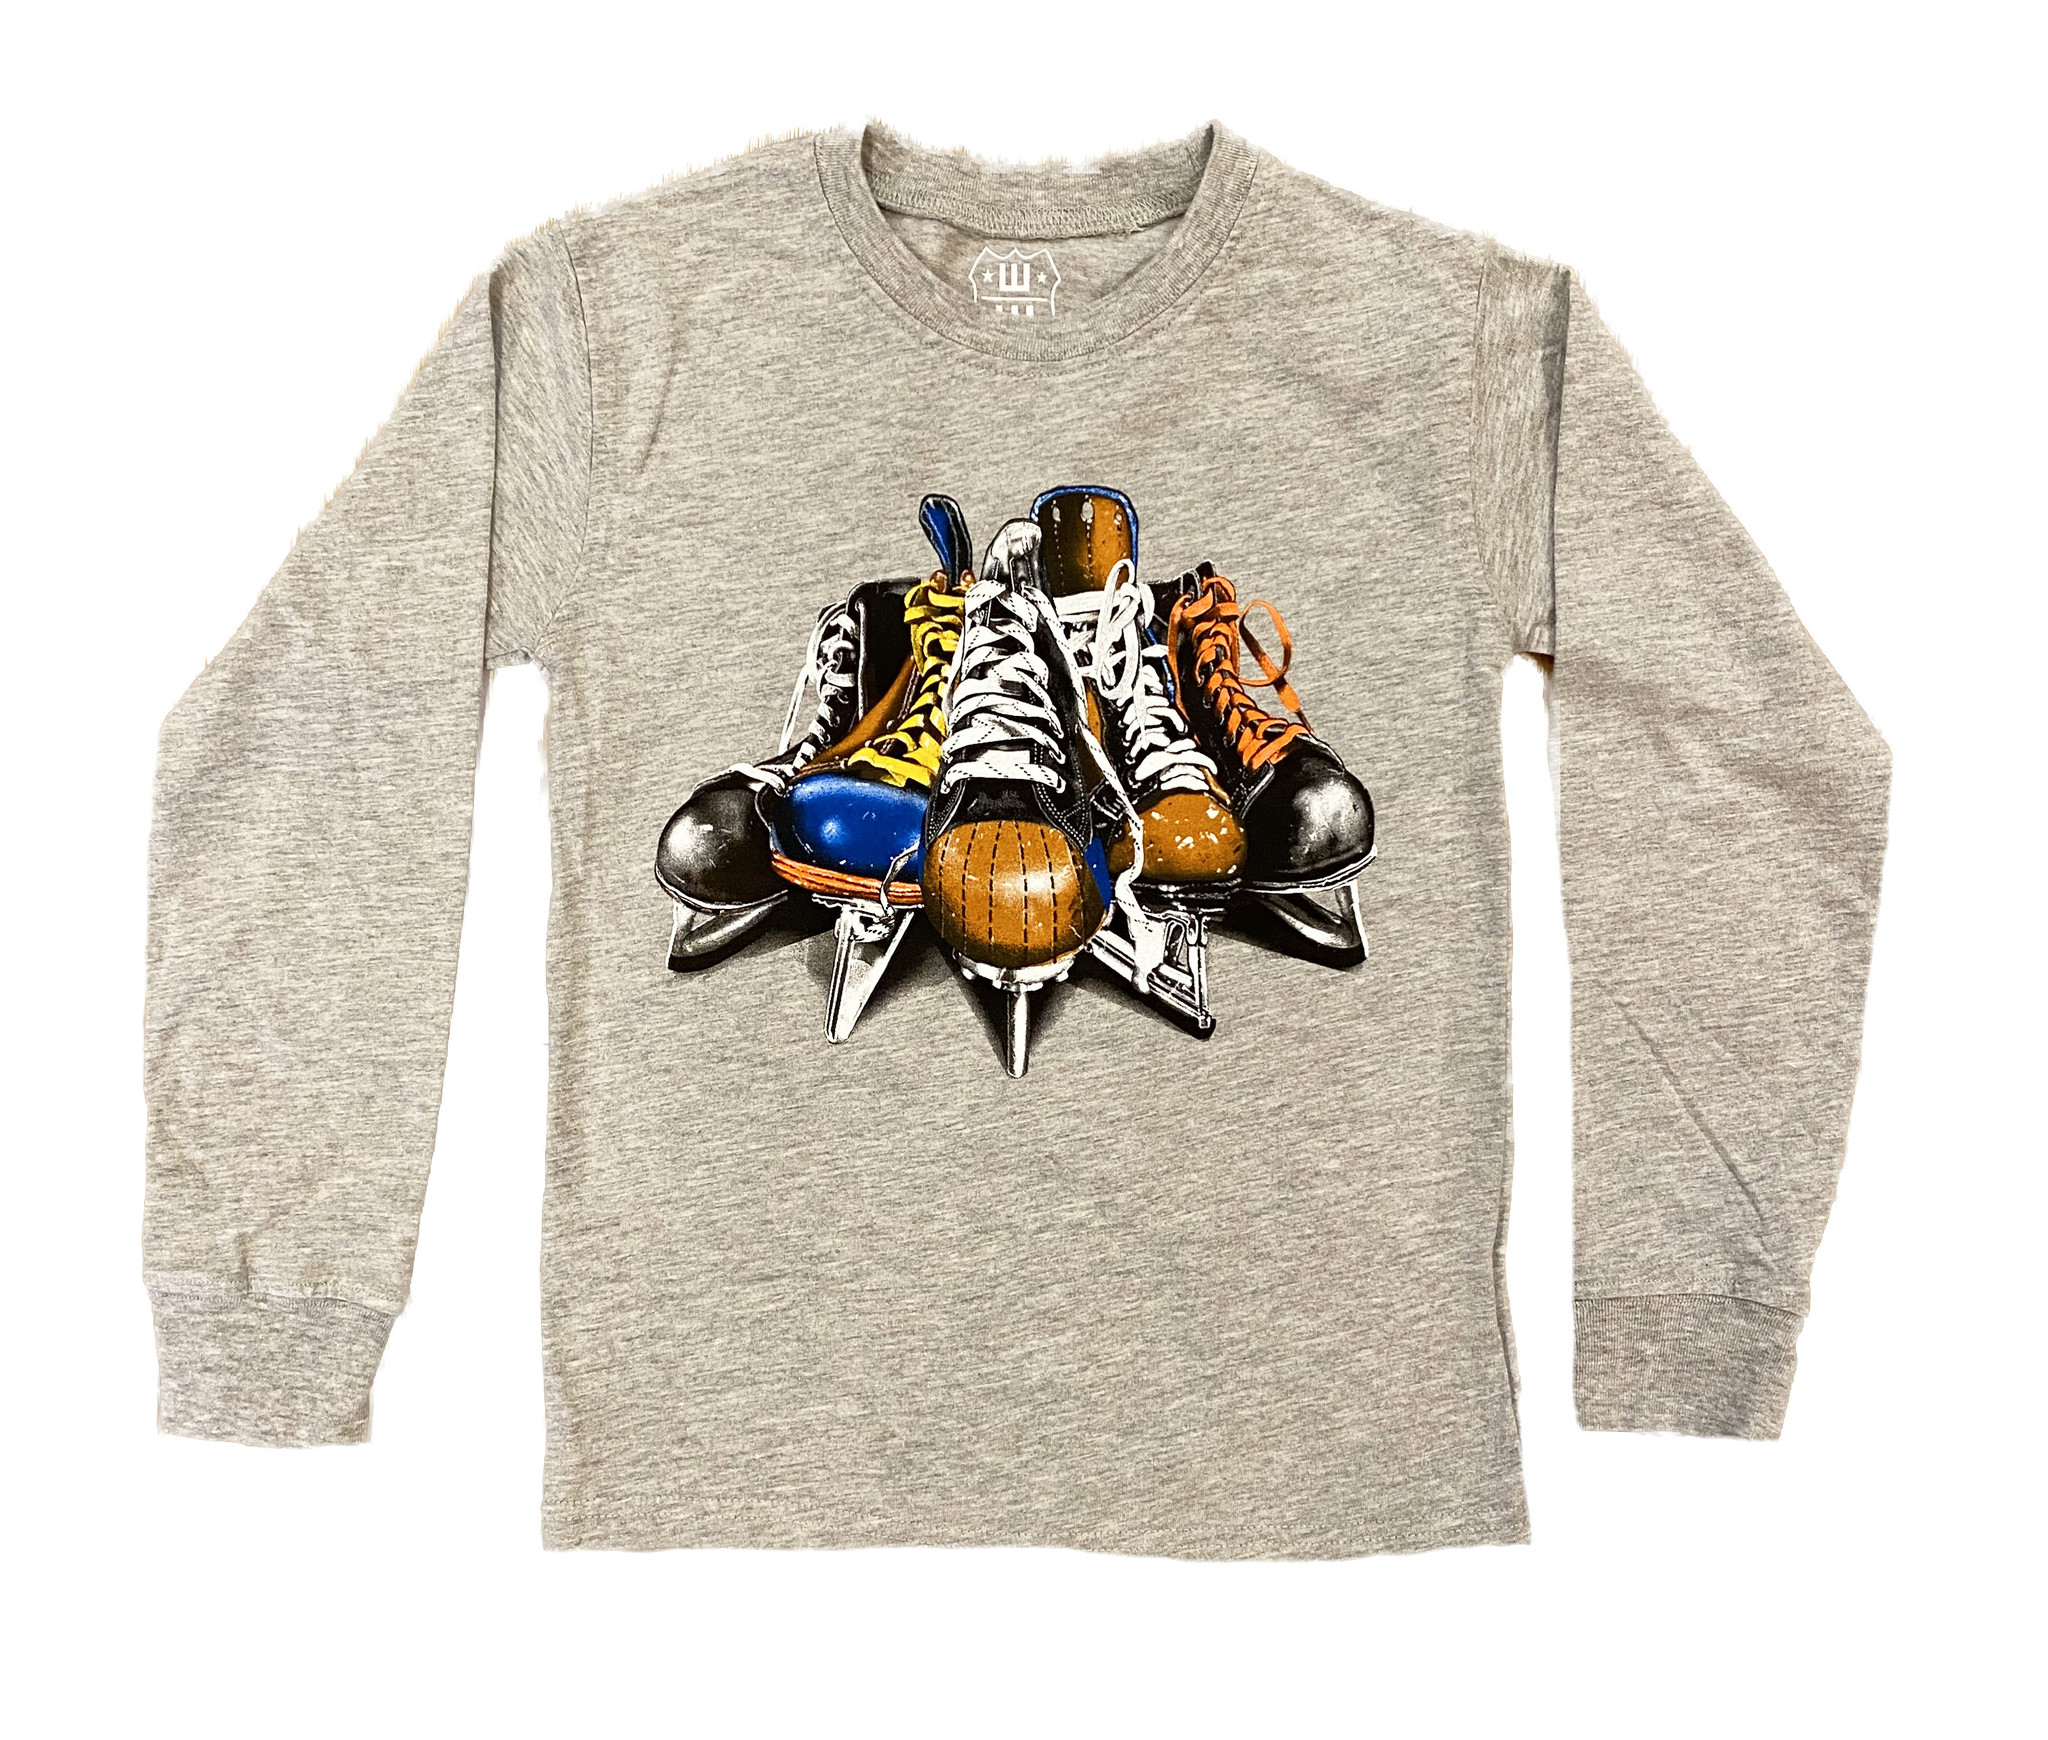 Wes and Willy Hockey Skates Tee